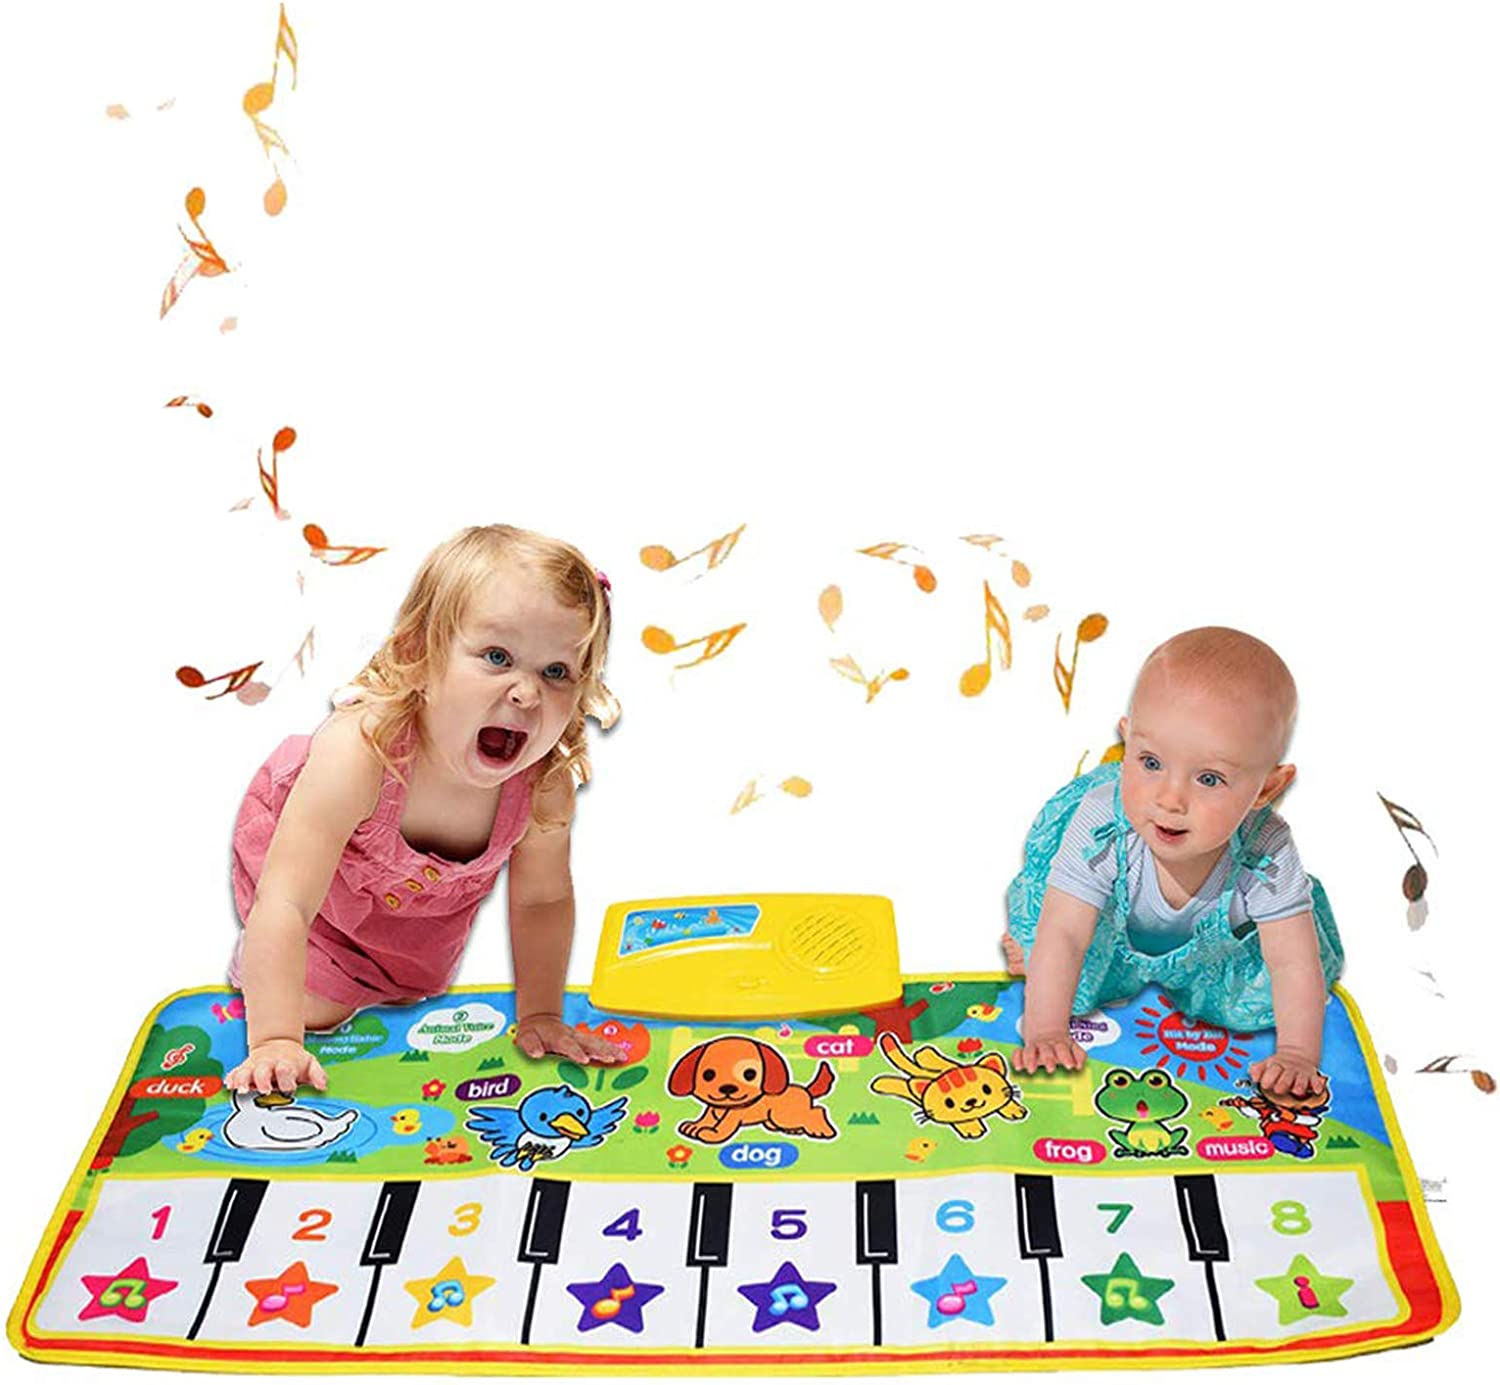 Touch Play Mat Early Education Music Toys,Step On Playmat,for 3 Years Old Girls MOVKZACV Kids Musical Mat Toys,Piano Mat Keyboard Dancing Mat with 8 Instrument Modes